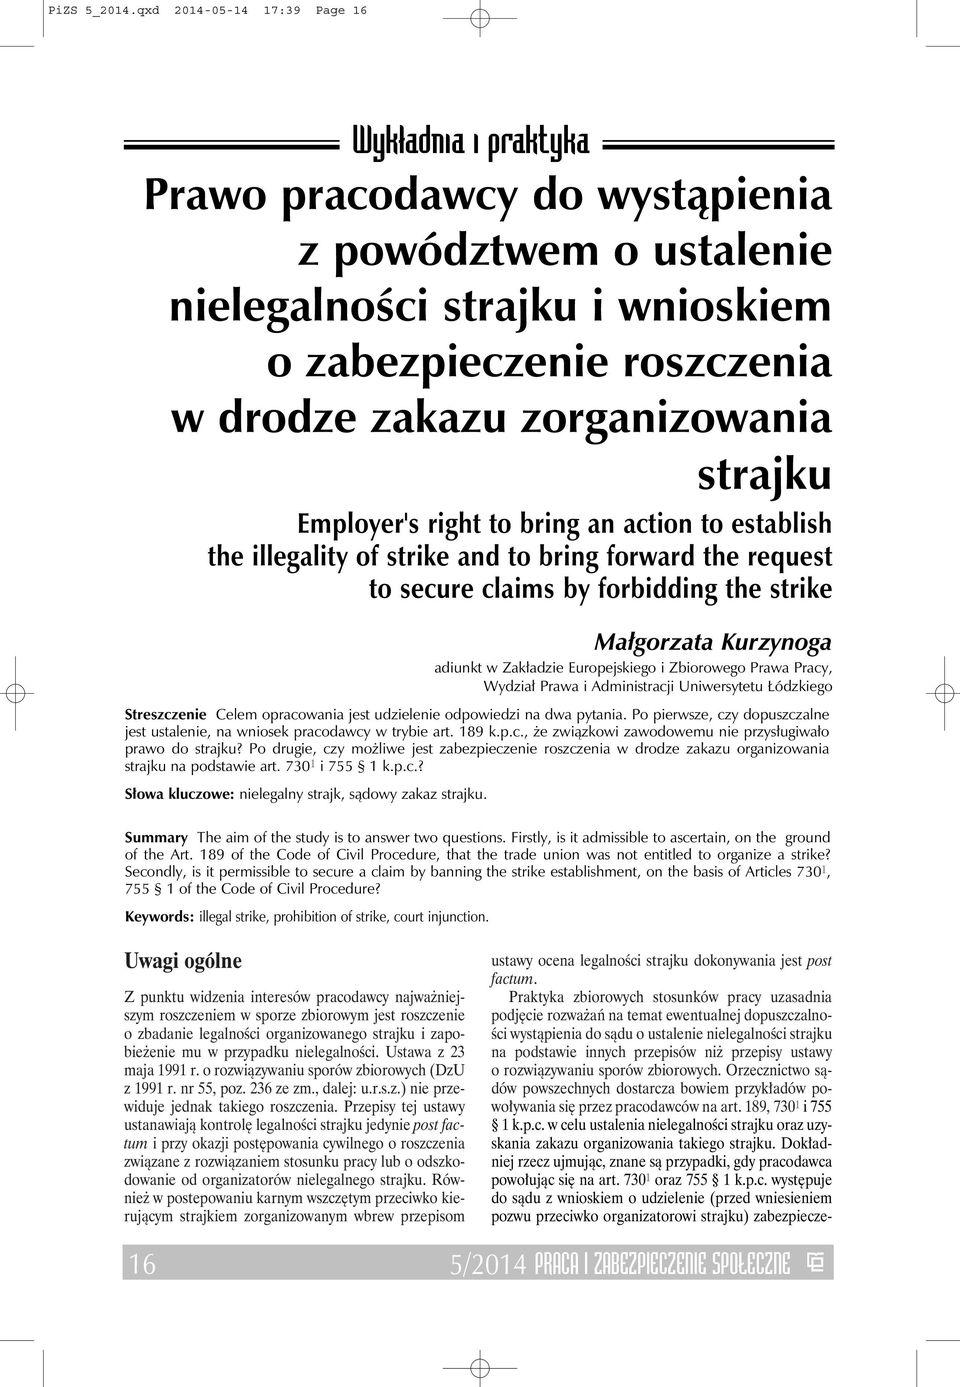 strajku Employer's right to bring an action to establish the illegality of strike and to bring forward the request to secure claims by forbidding the strike Małgorzata Kurzynoga adiunkt w Zakładzie